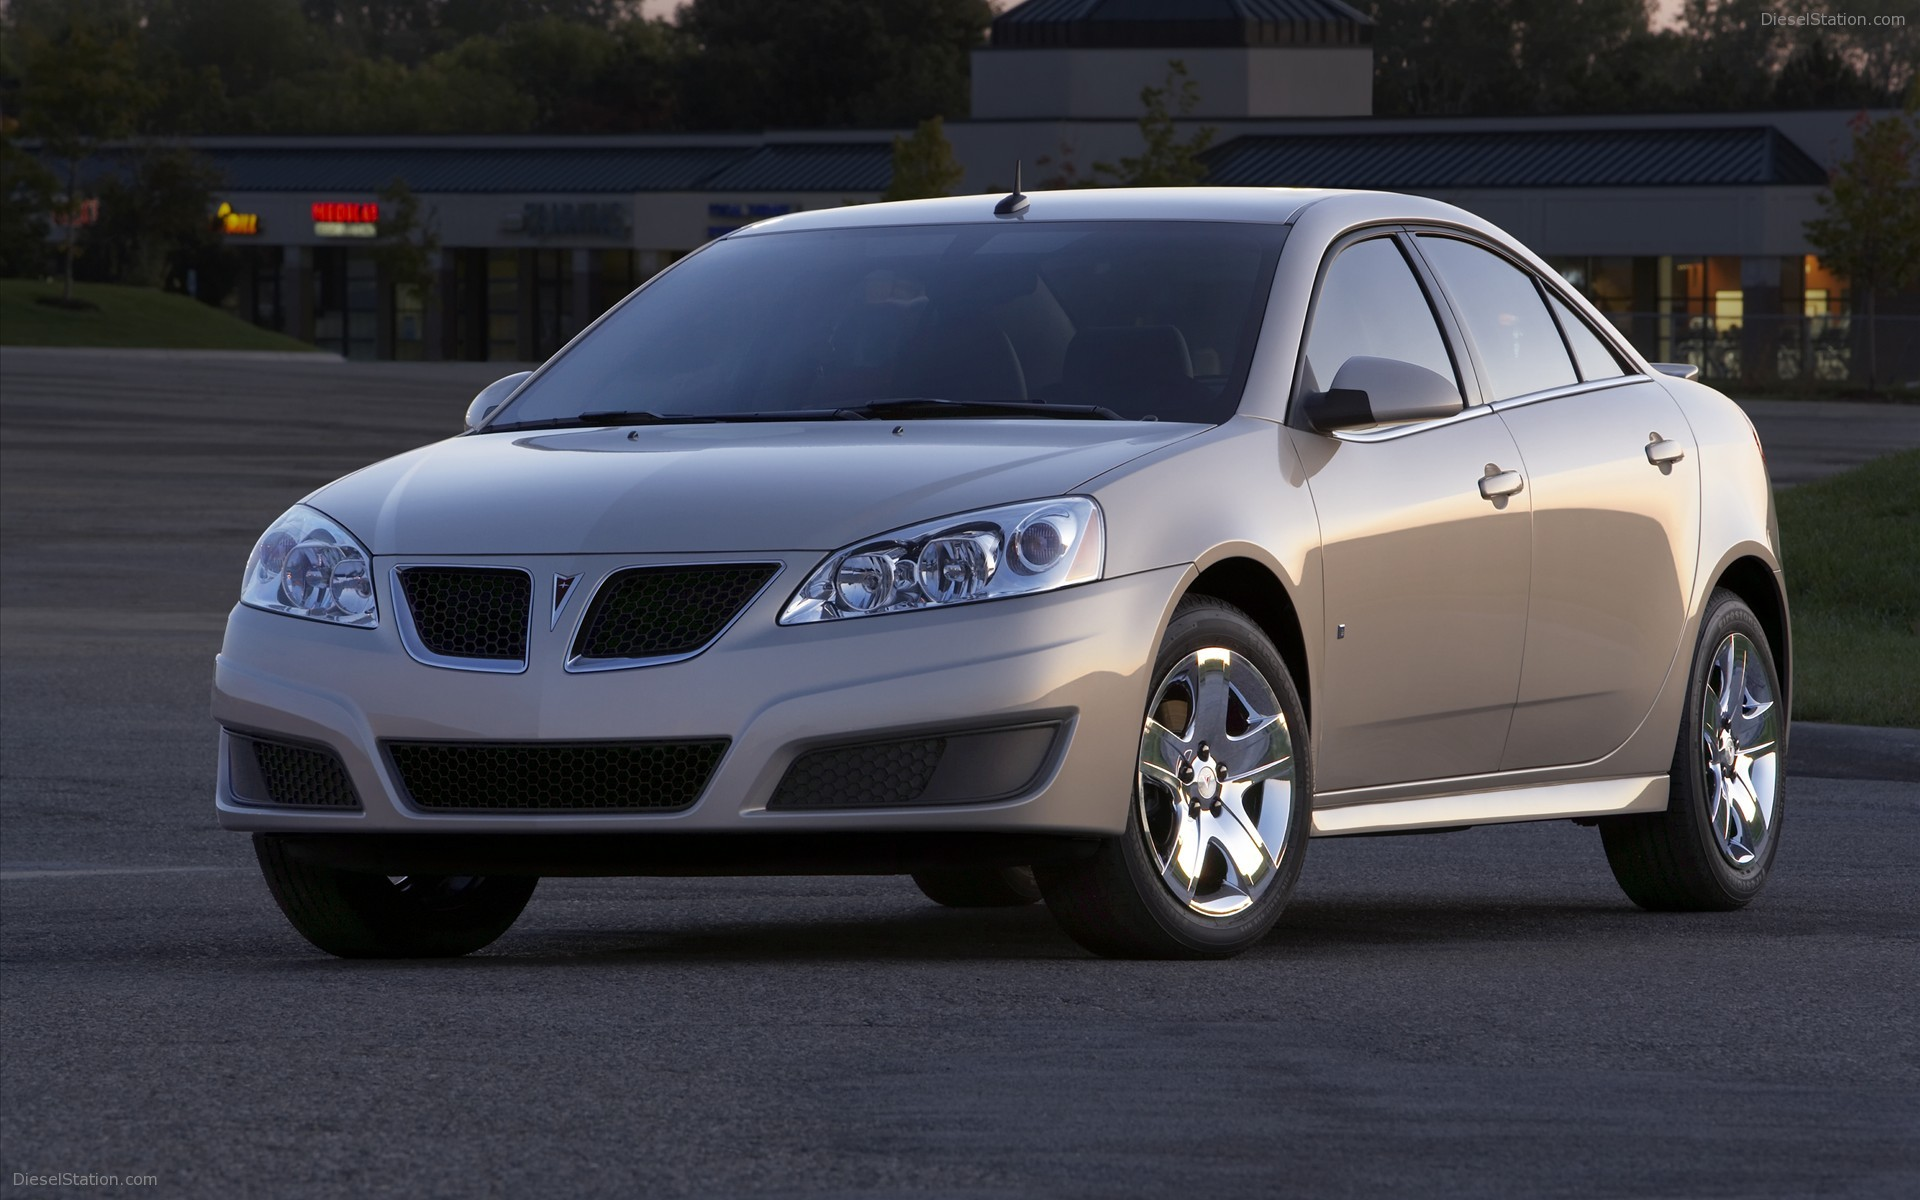 Pontiac g6 photo - 3